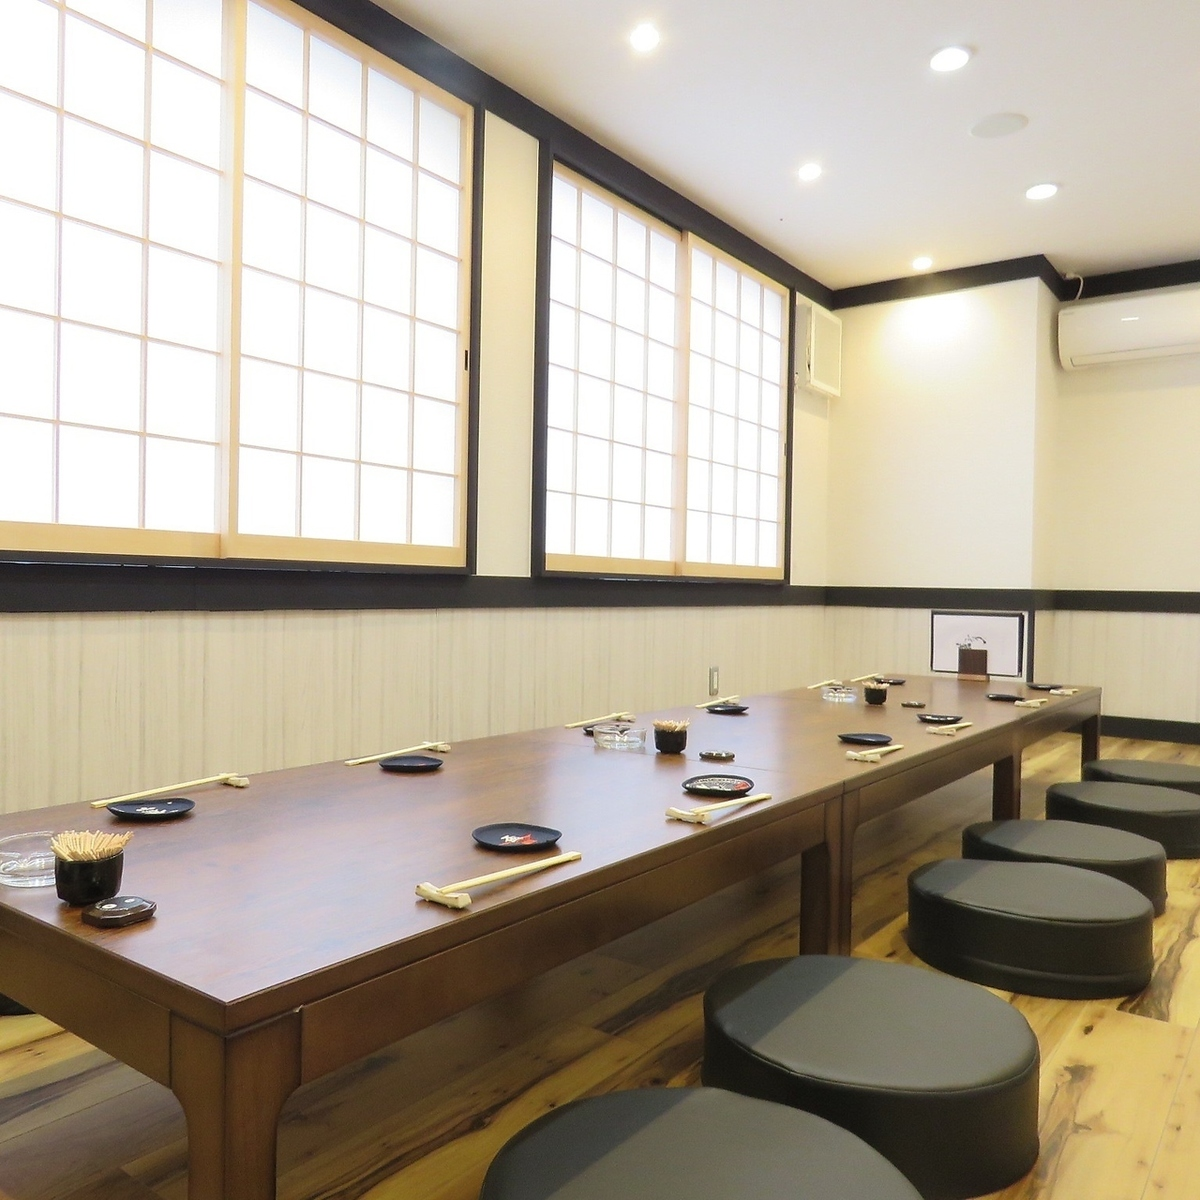 【2F】 Up to 12 people OK! Add a divider, up to 4 tables per table.